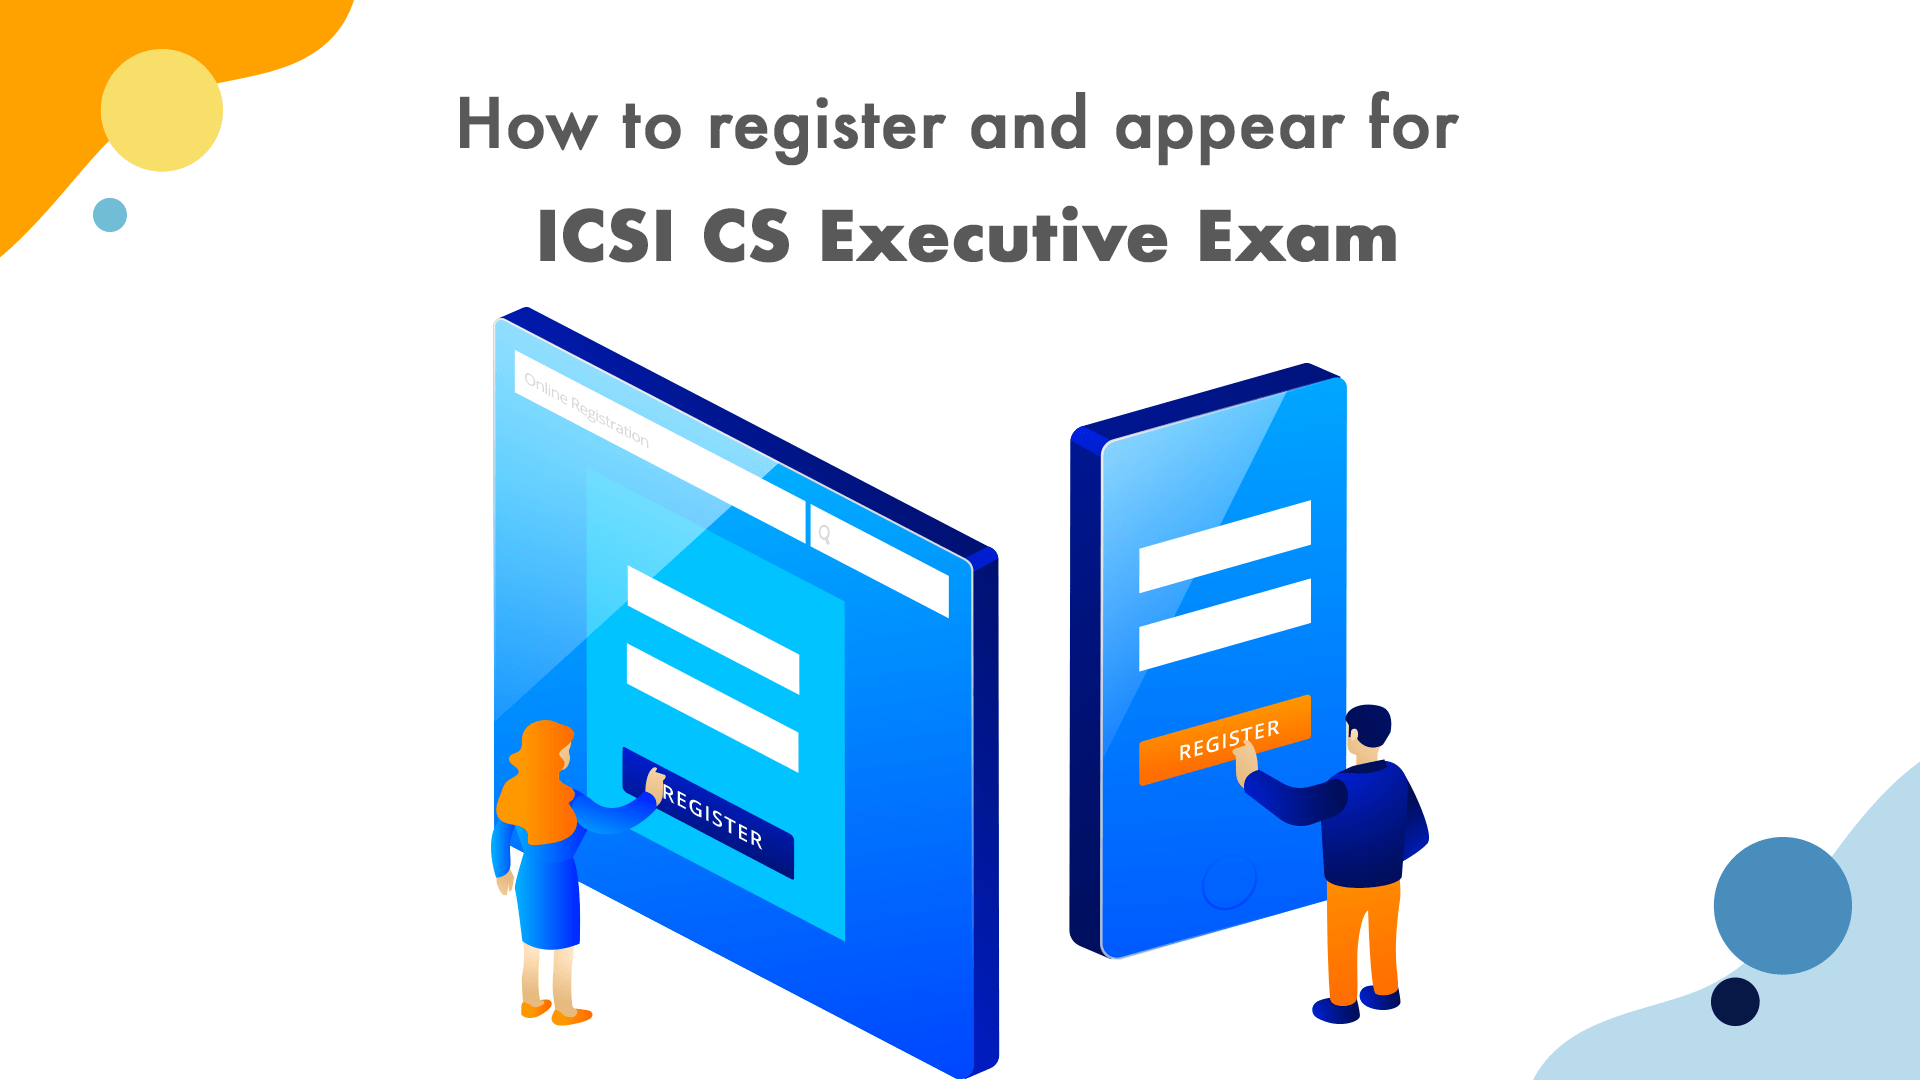 How to Register and Appear for ICSI CS Executive Exam